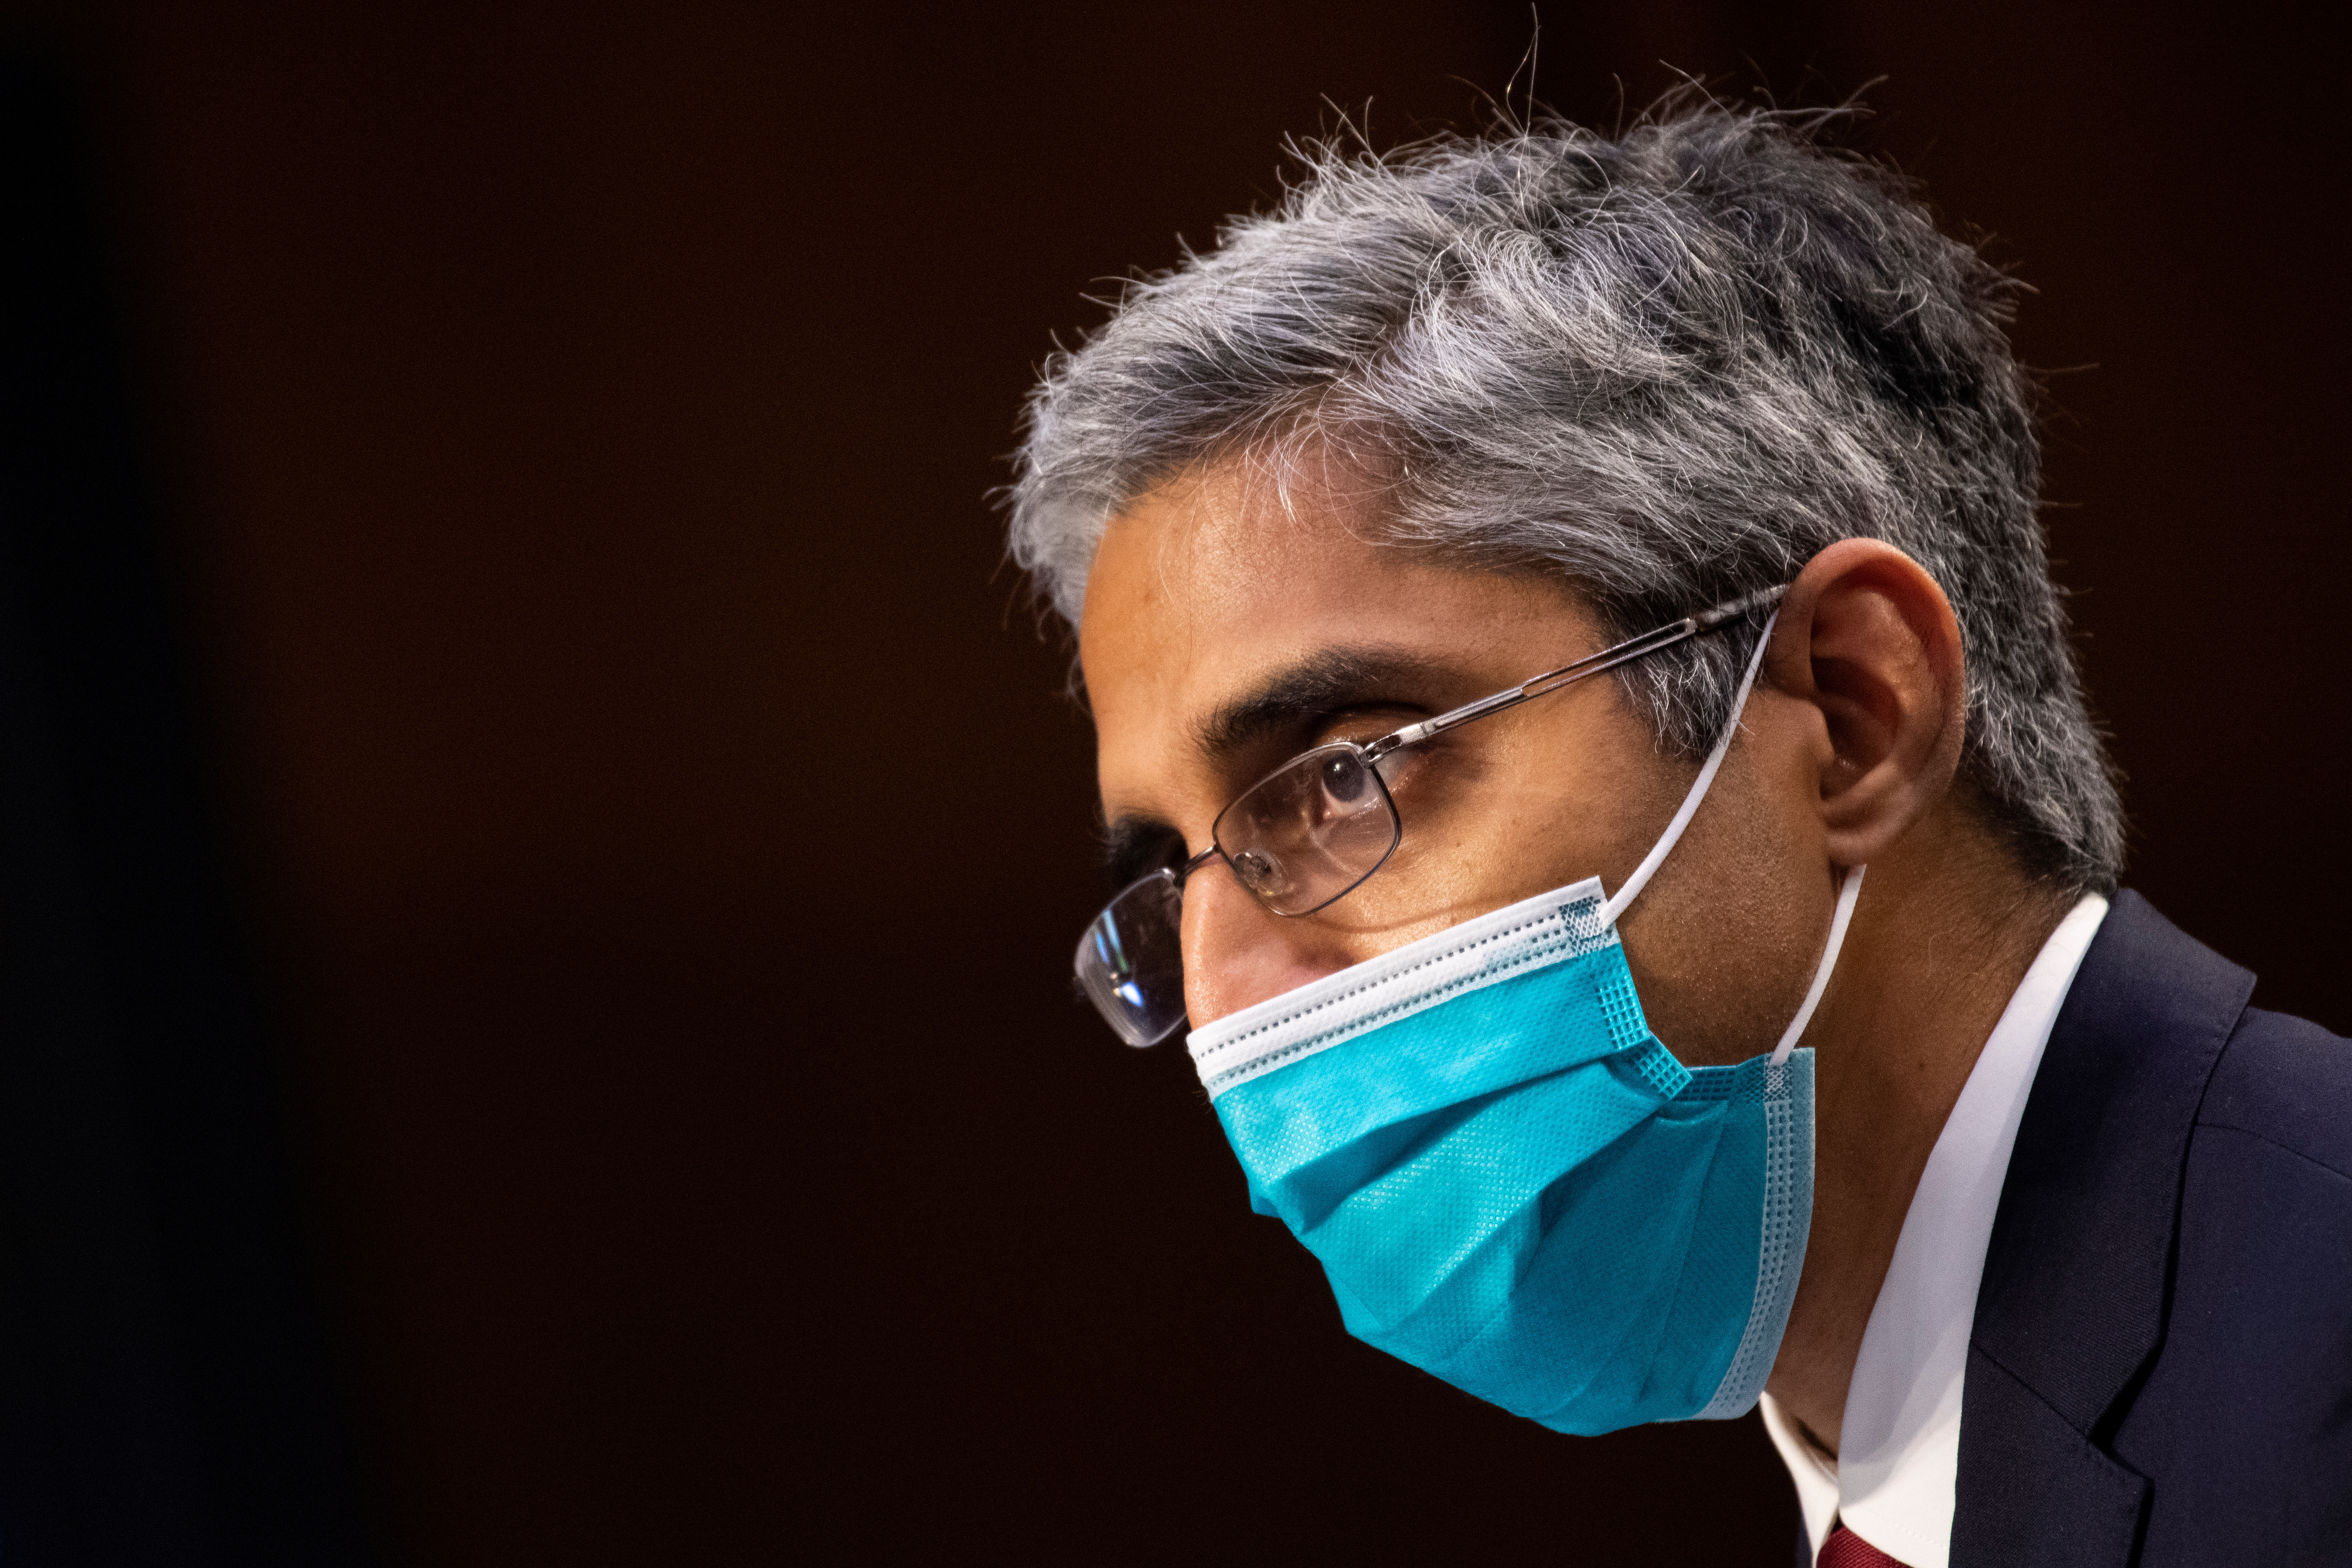 Vivek Murthy speaks during his confirmation hearing to be Medical Director in the Regular Corps of the Public Health Service and to be Surgeon General of the Public Health Service before the Senate Health, Education, Labor, and Pensions committee in Washington, U.S. February 25, 2021. Caroline Brehman/Pool via REUTERS